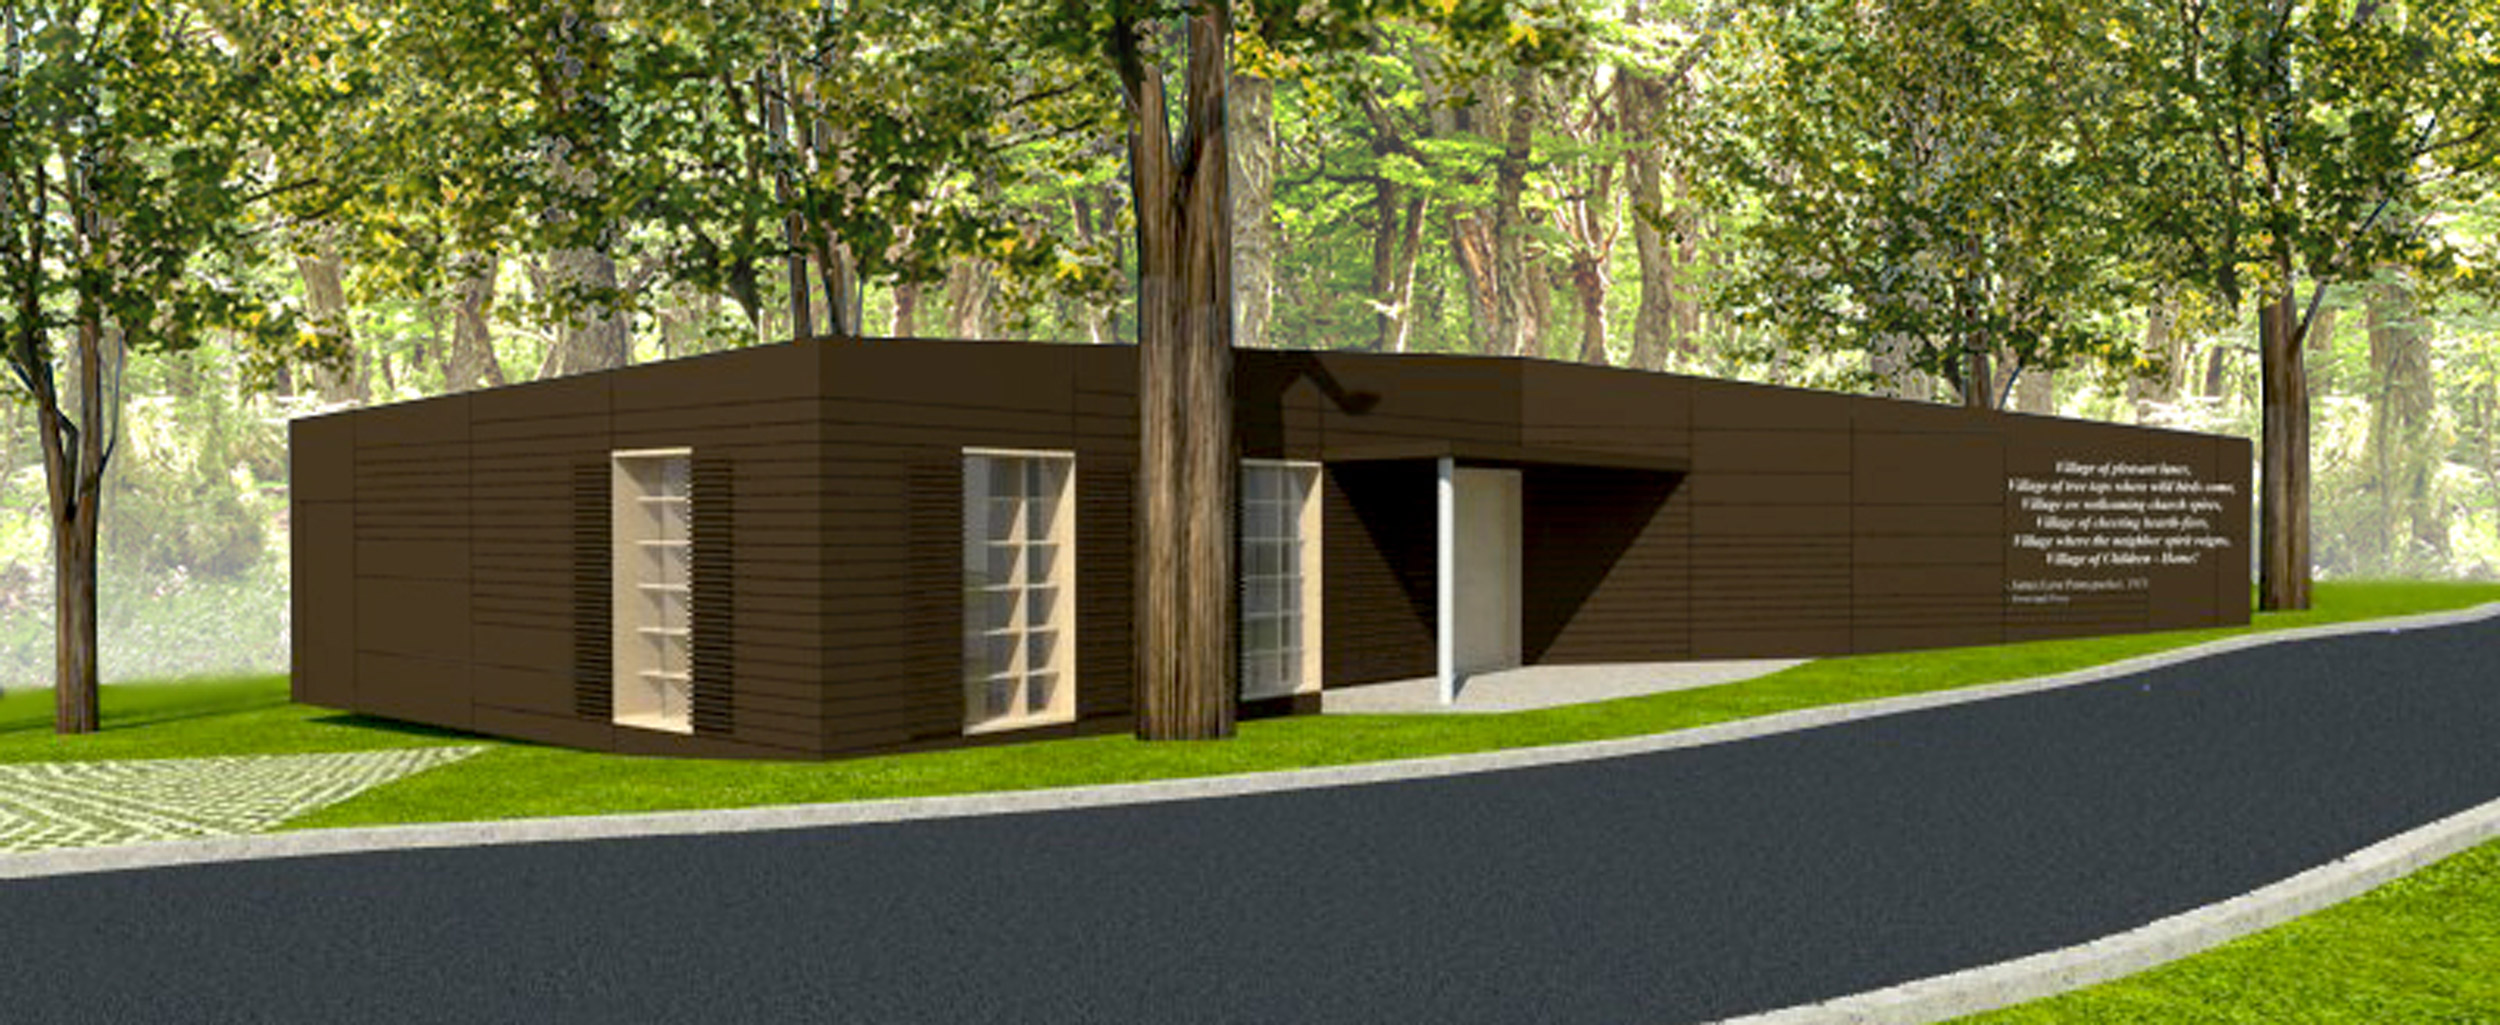 Wissahickon-Valley-Park-Visitors-Office_Low_04